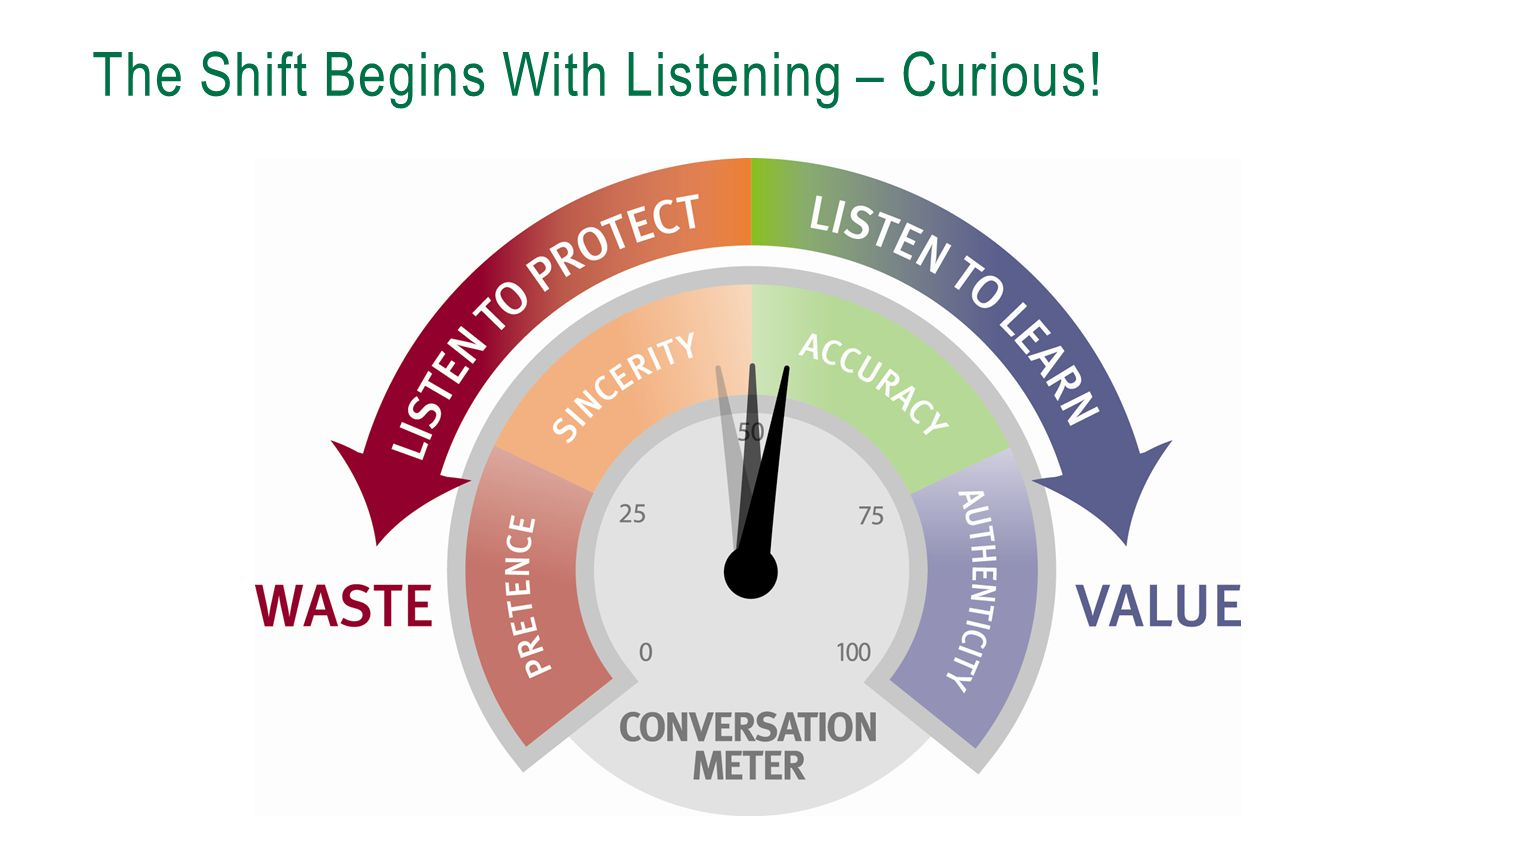 The Shift Begins With Listening – Curious!